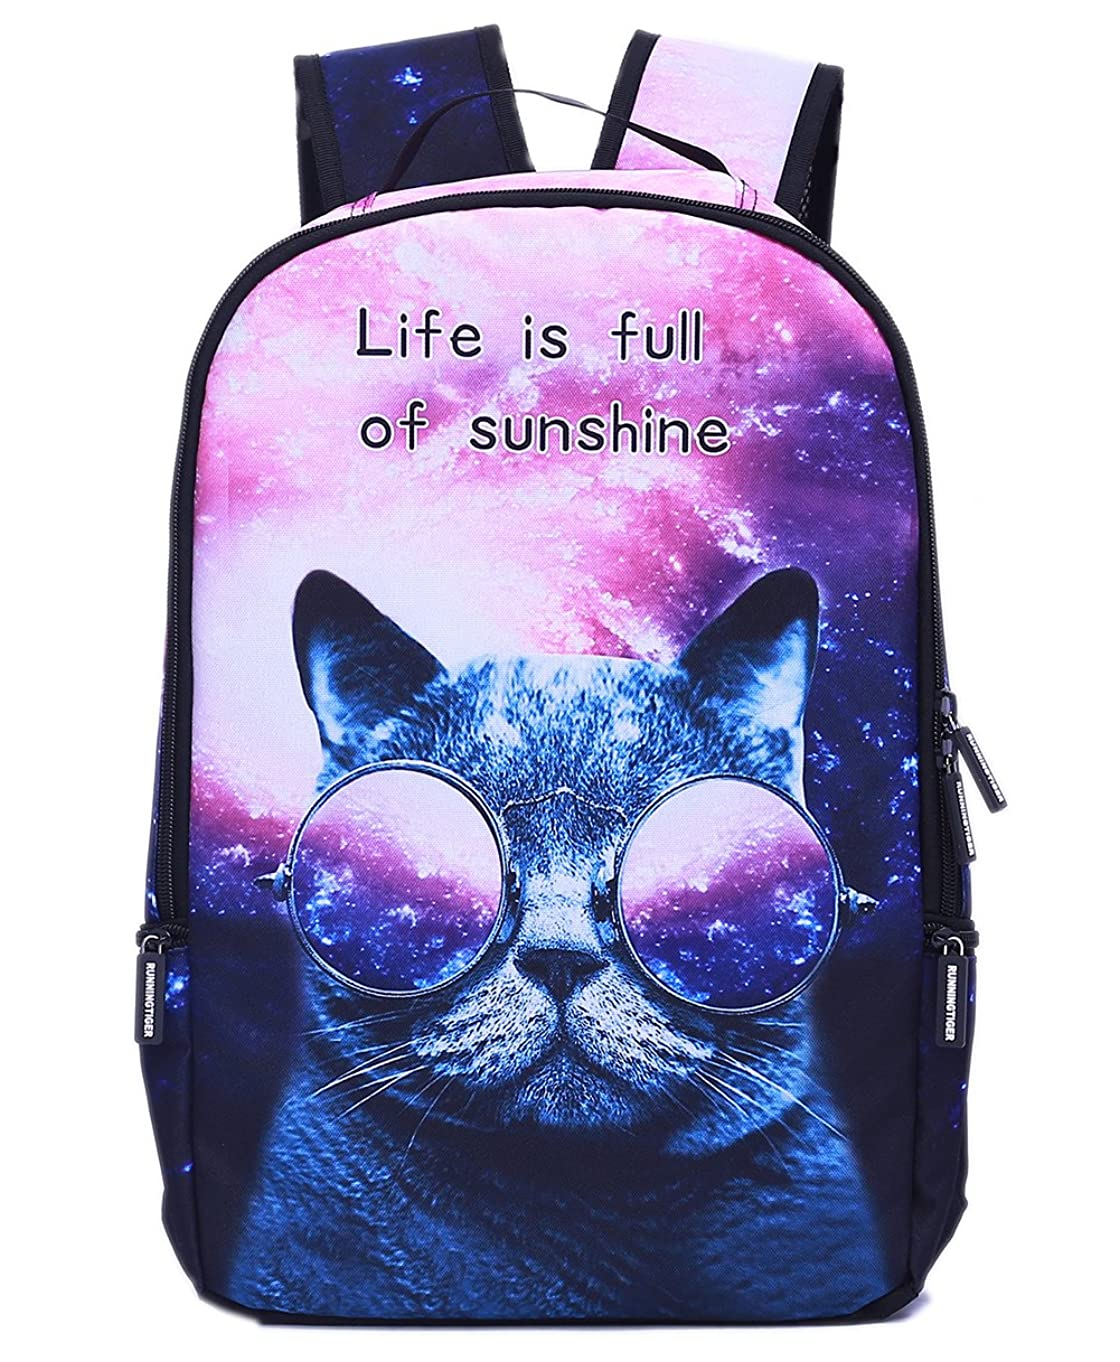 Galaxy Cat Backpack Lightweight School Backpack Laptop Bag for Students